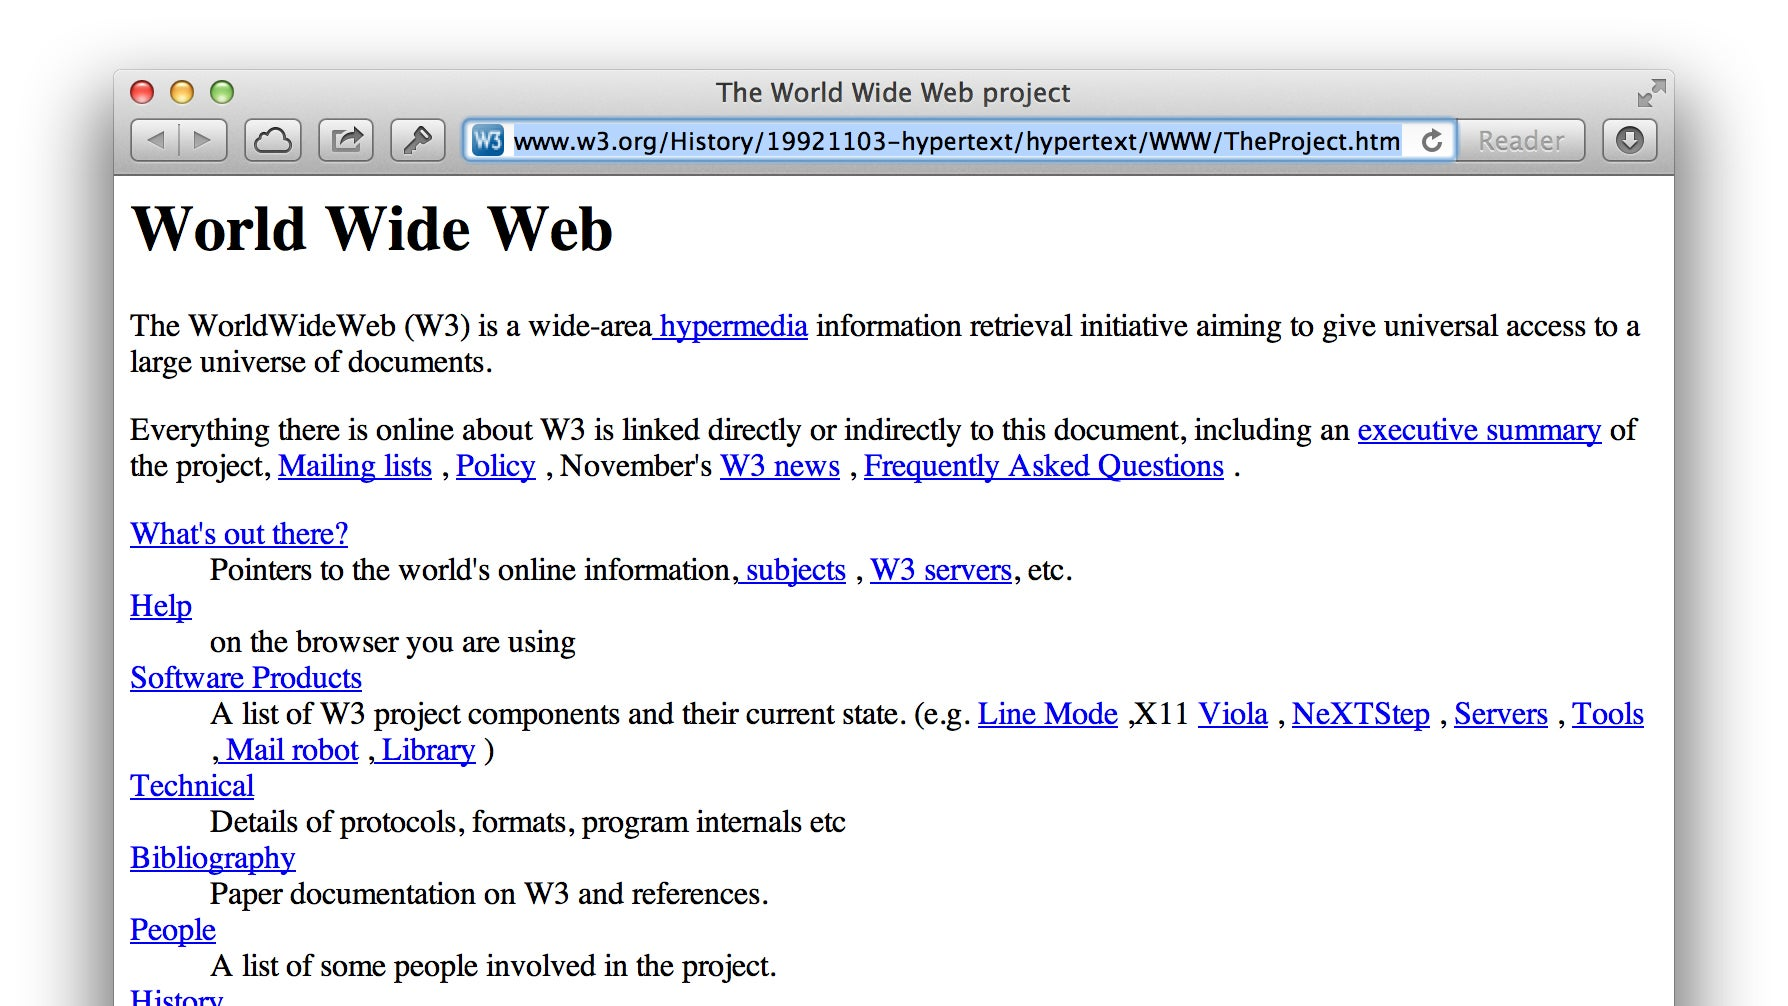 This is the first website ever rebooted for It web page